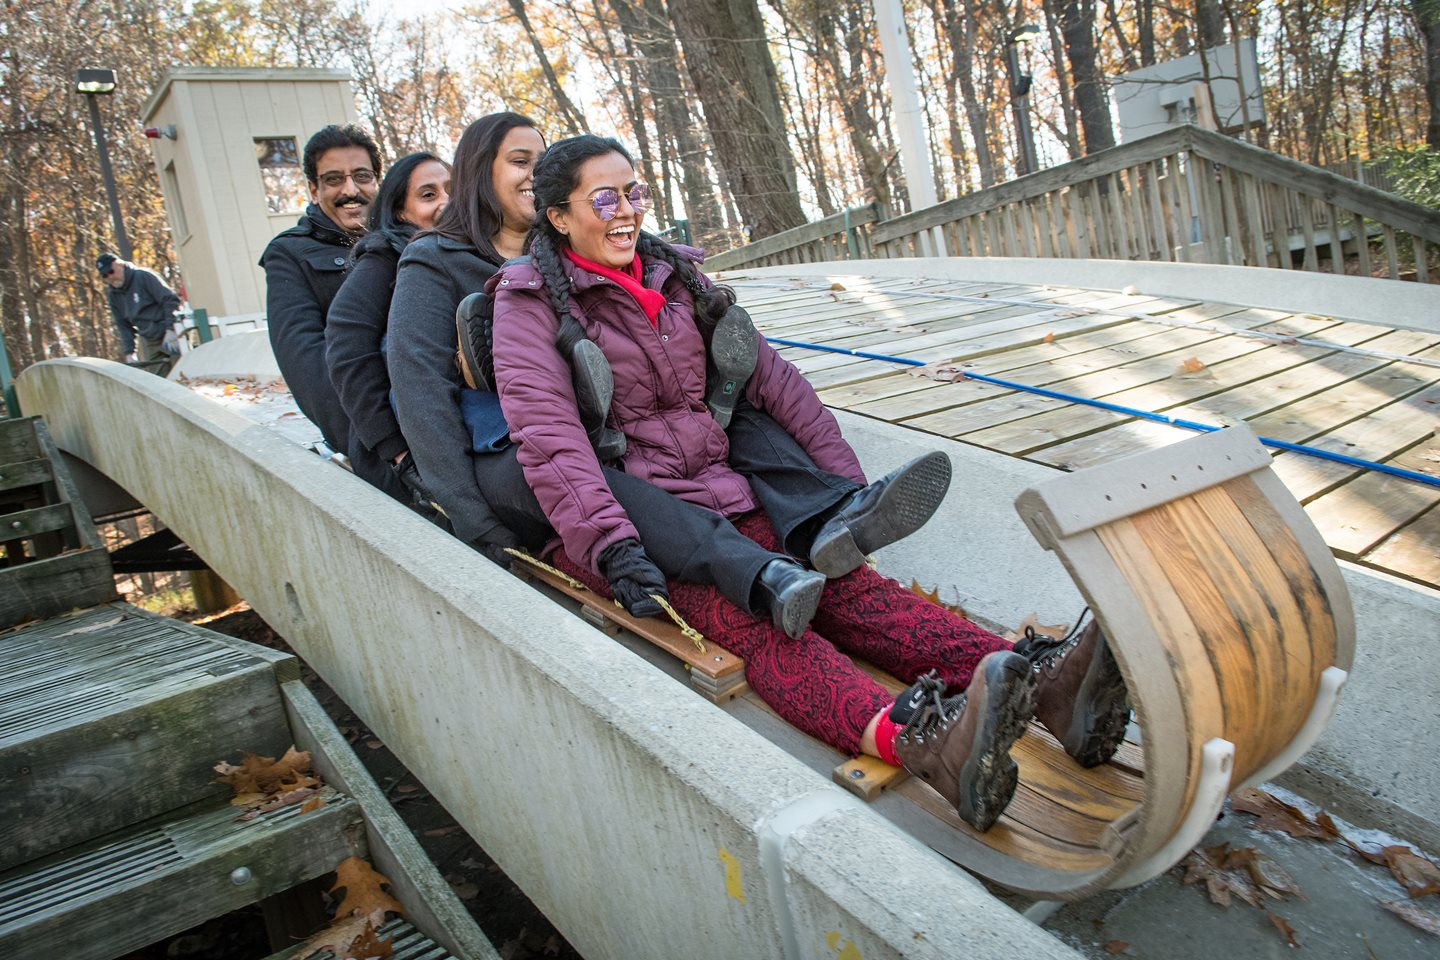 Cleveland Metroparks Toboggan Chutes Set to Open for the Winter Season